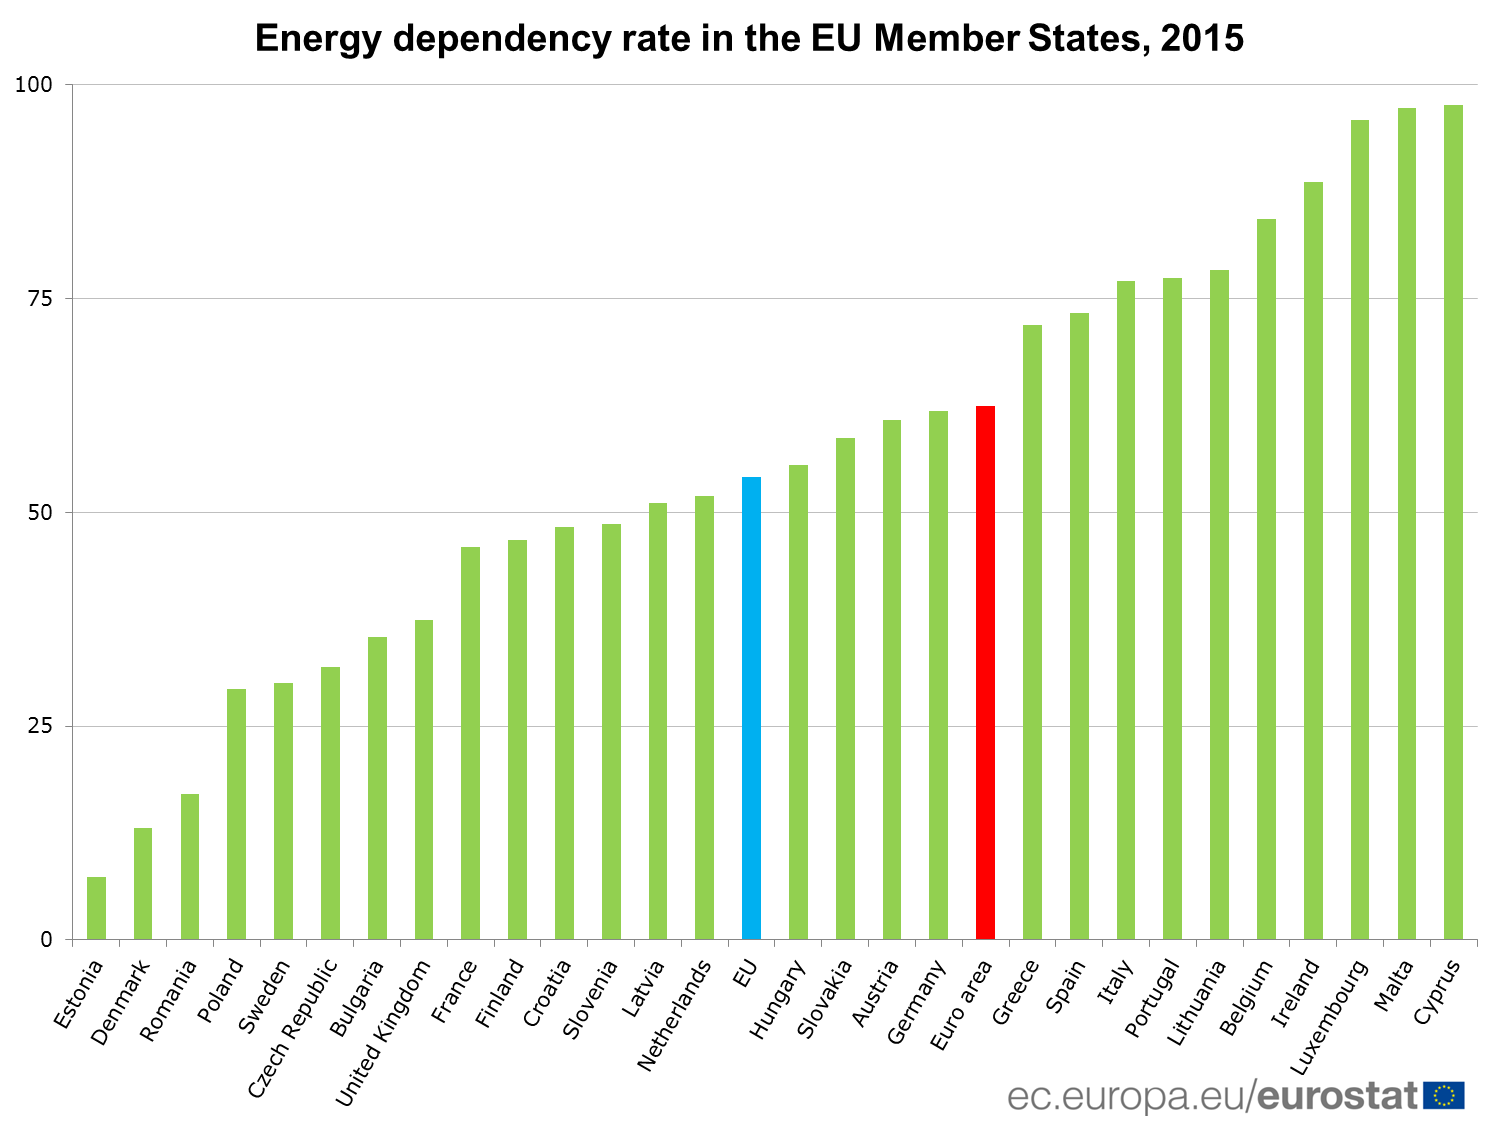 Energy dependency rate in the EU Member States, 2015